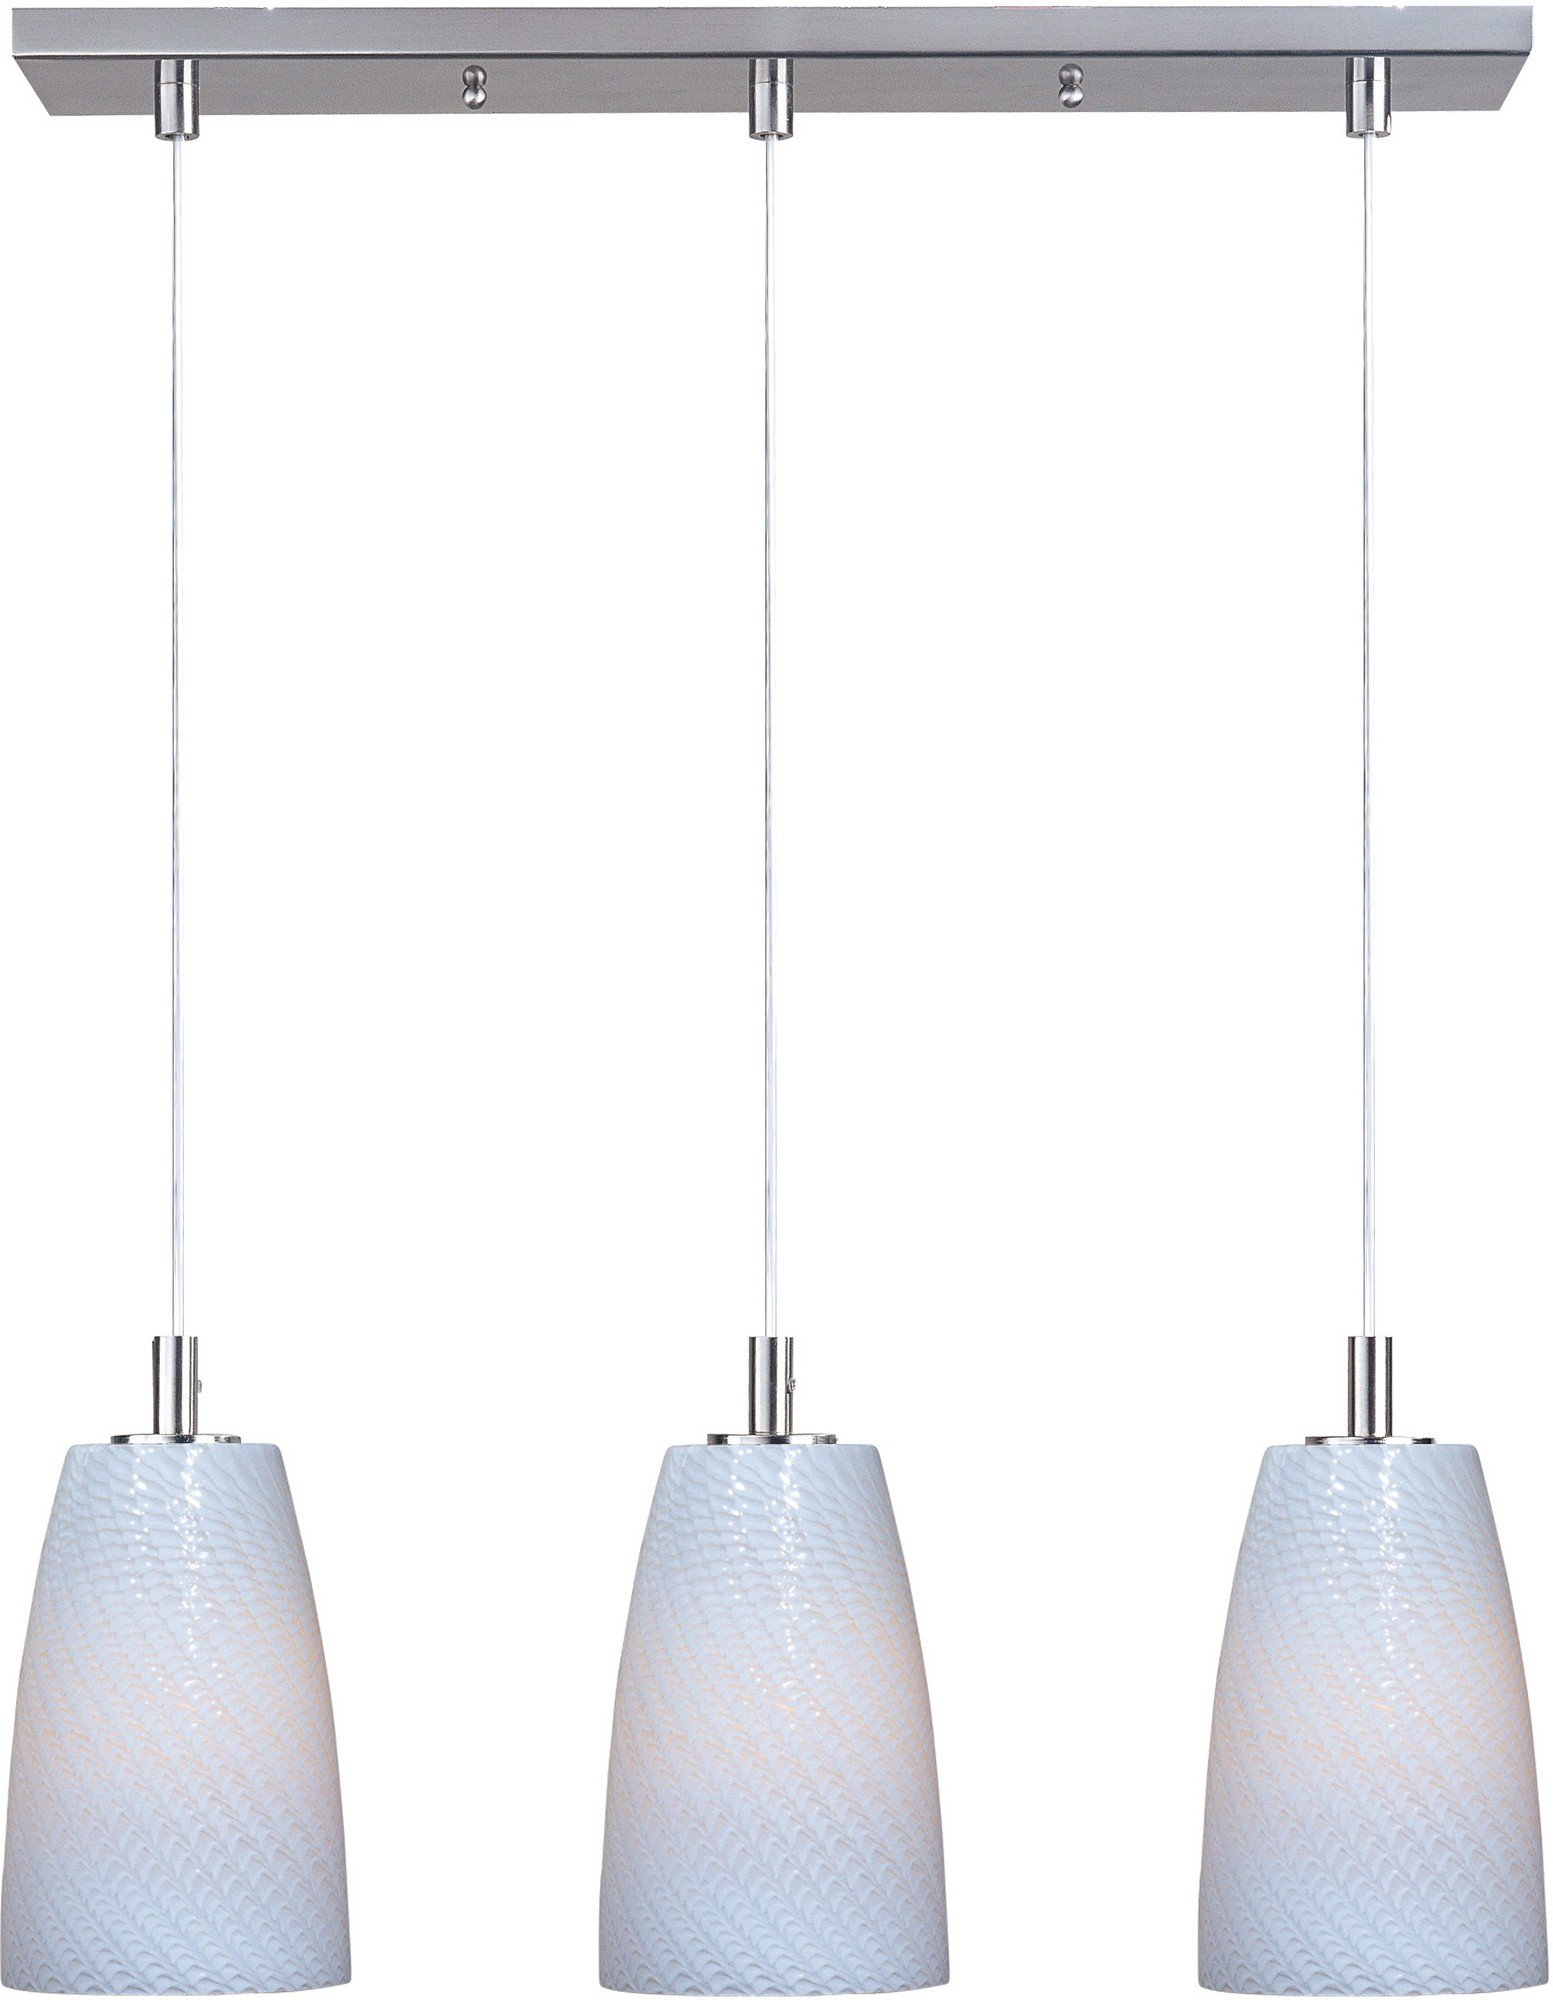 ET2 E92043-13SN Carte 3-Light Linear Pendant, Satin Nickel Finish, White Ripple Glass, MB Incandescent Bulb, 40W Max., Dry Safety Rated, Shade Material, 1150 Rated Lumens